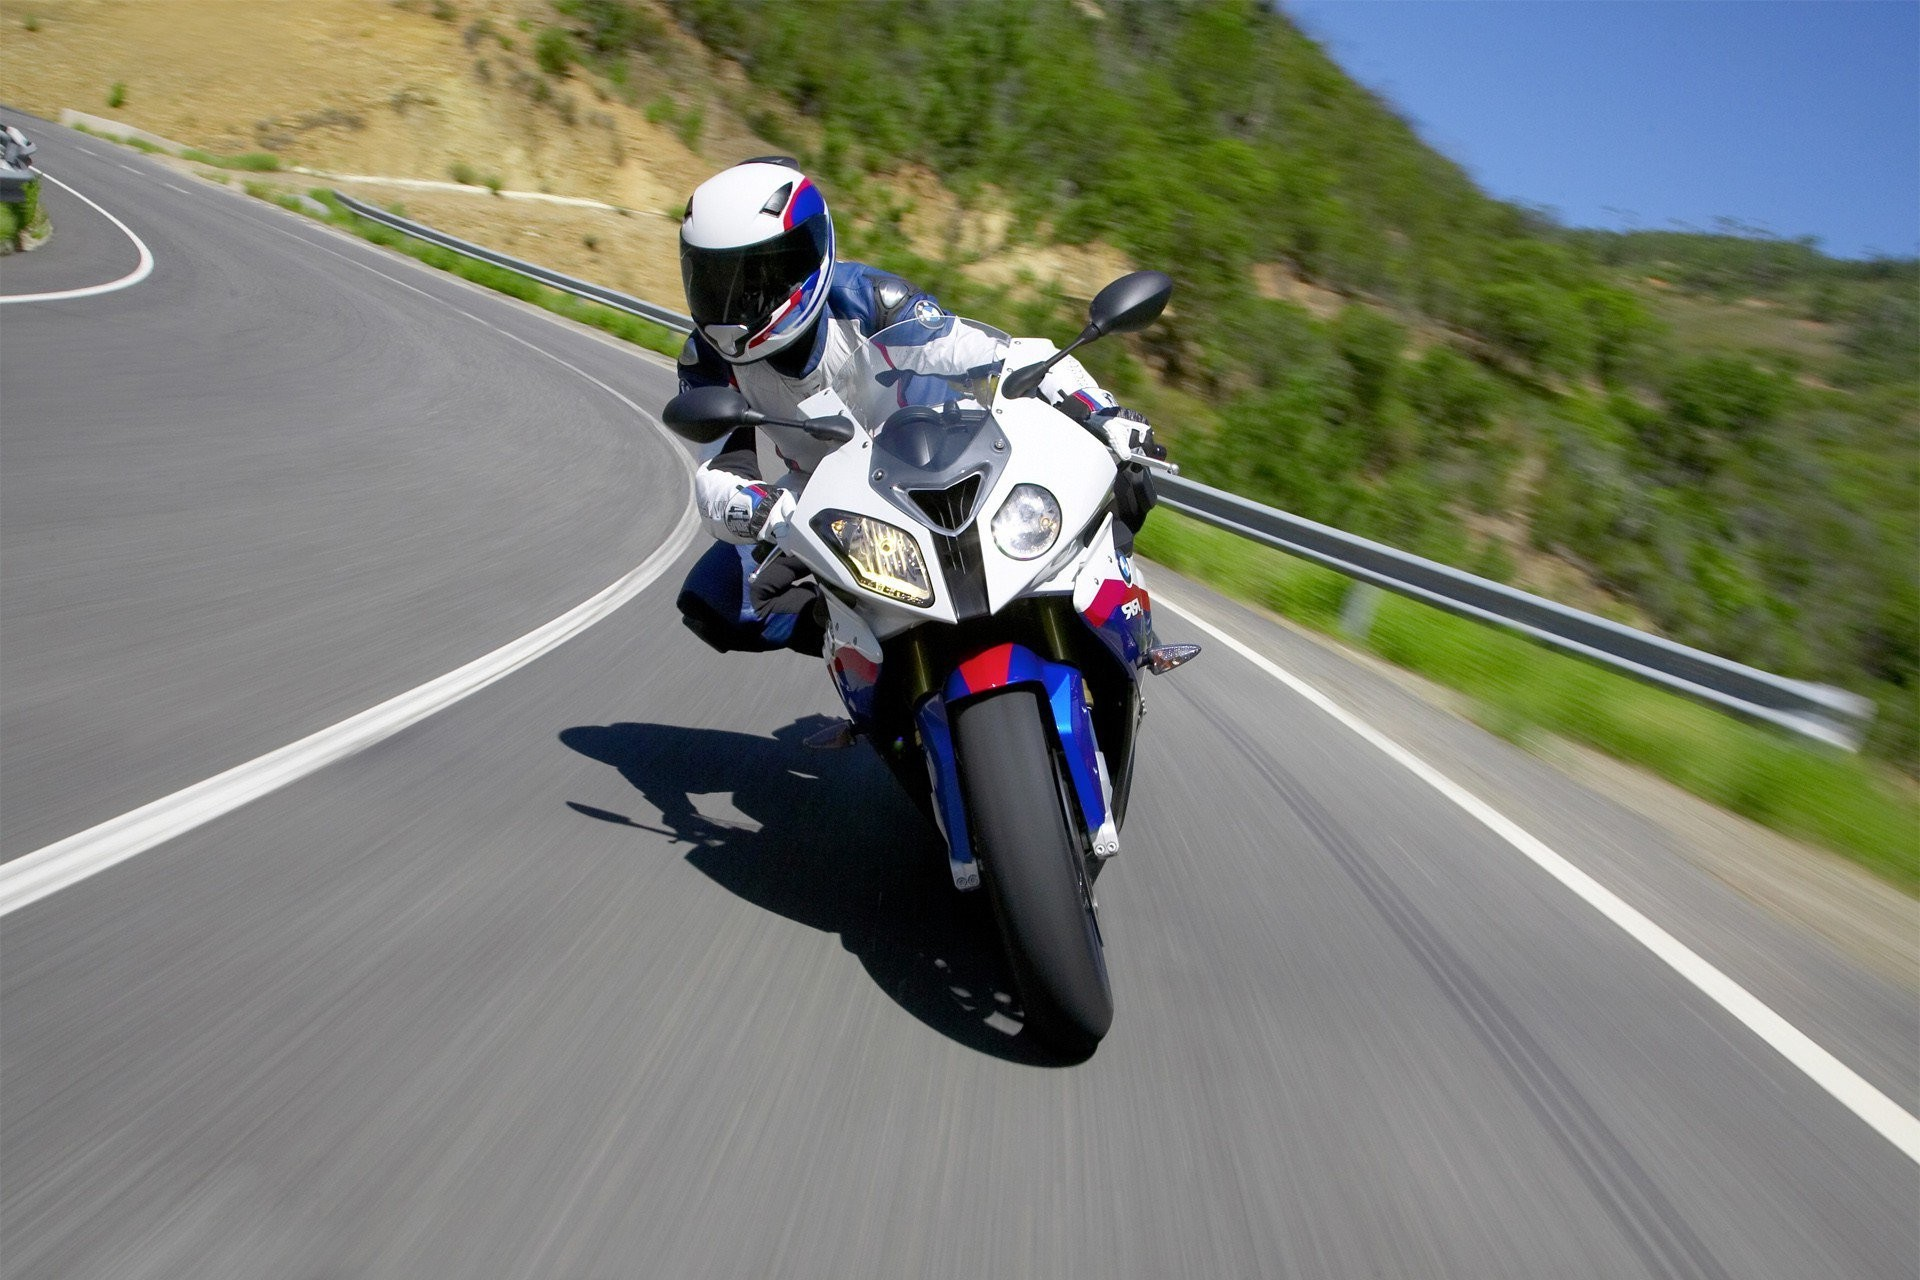 Bmw S1000rr 2020 Wallpaper Iphone